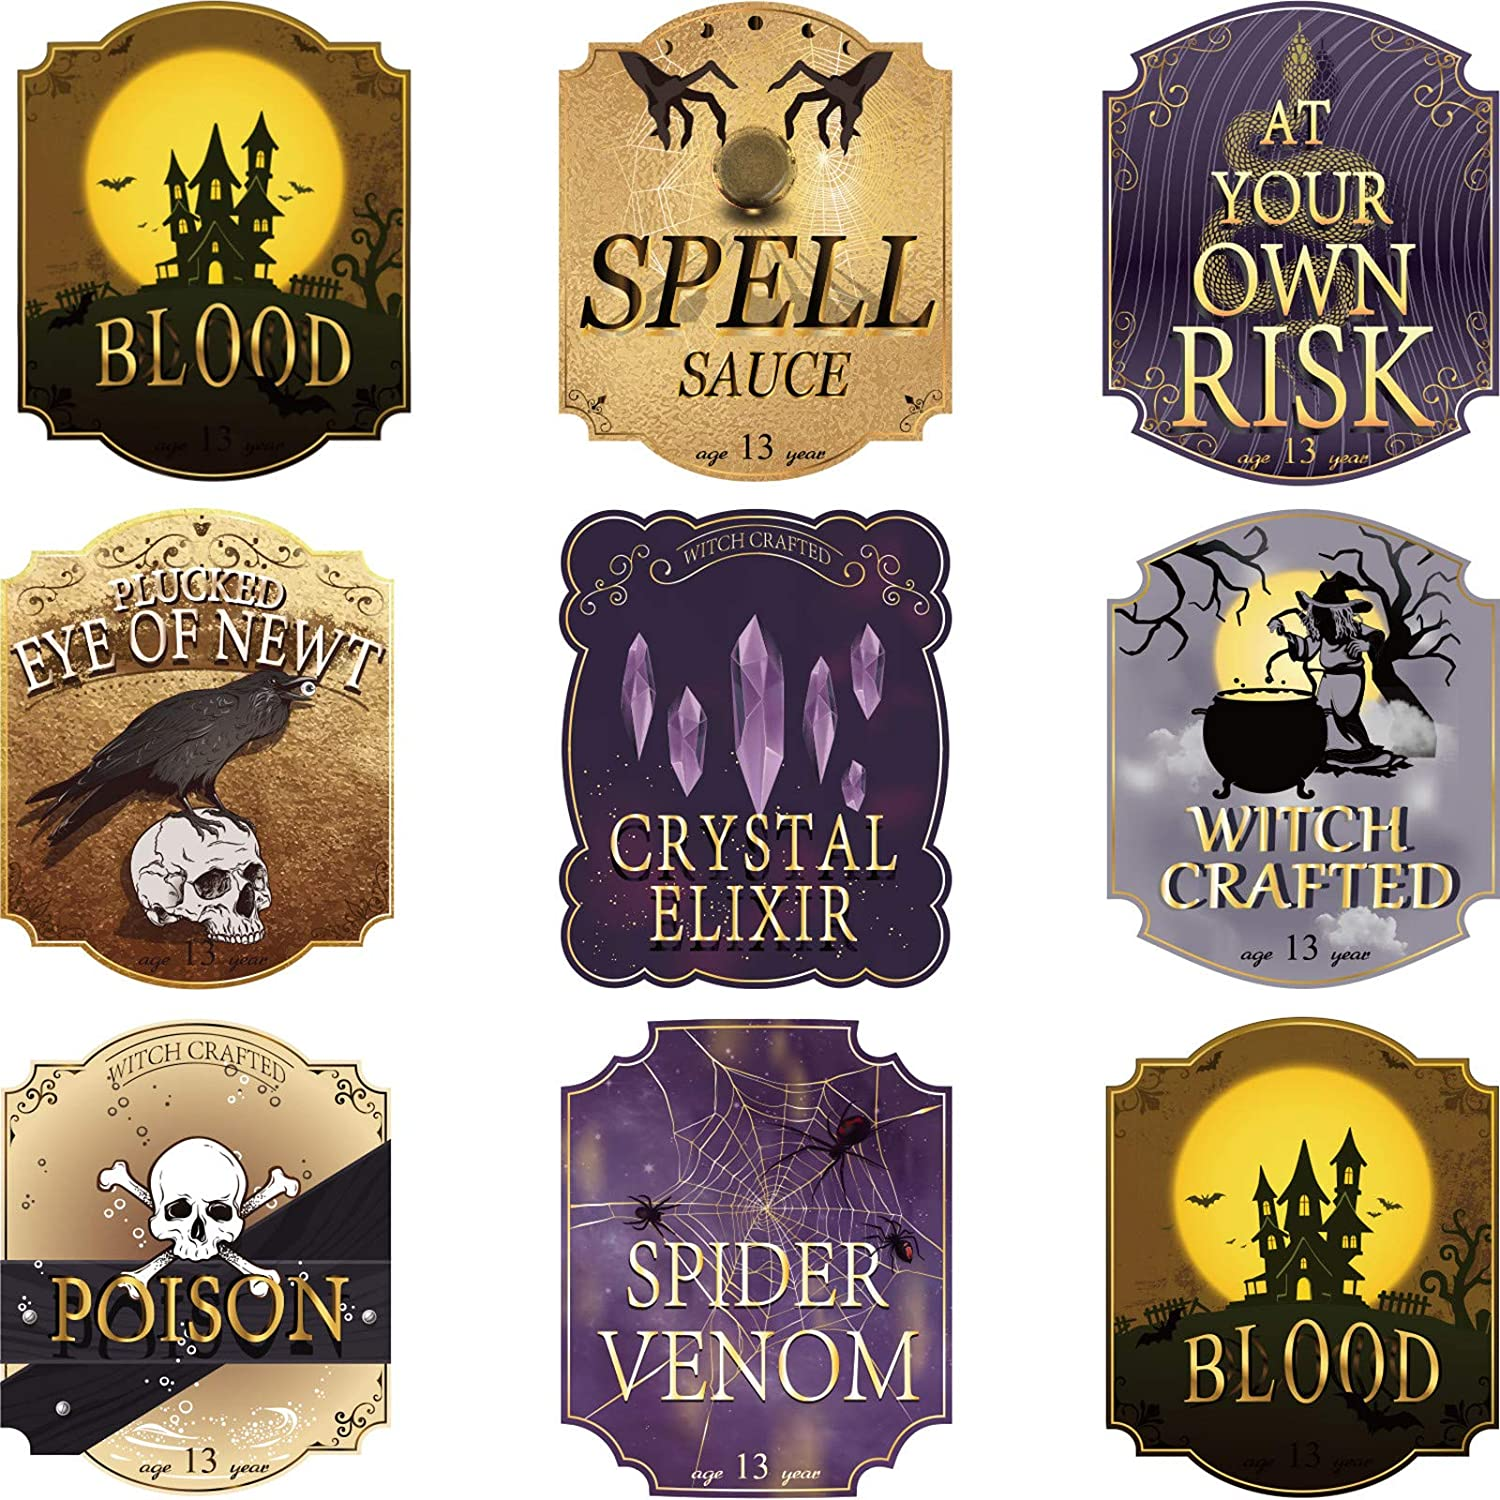 16 Pieces Halloween Wine Bottle Labels Party Decoration Luxury Wine Labels Accessories Stickers with Foil